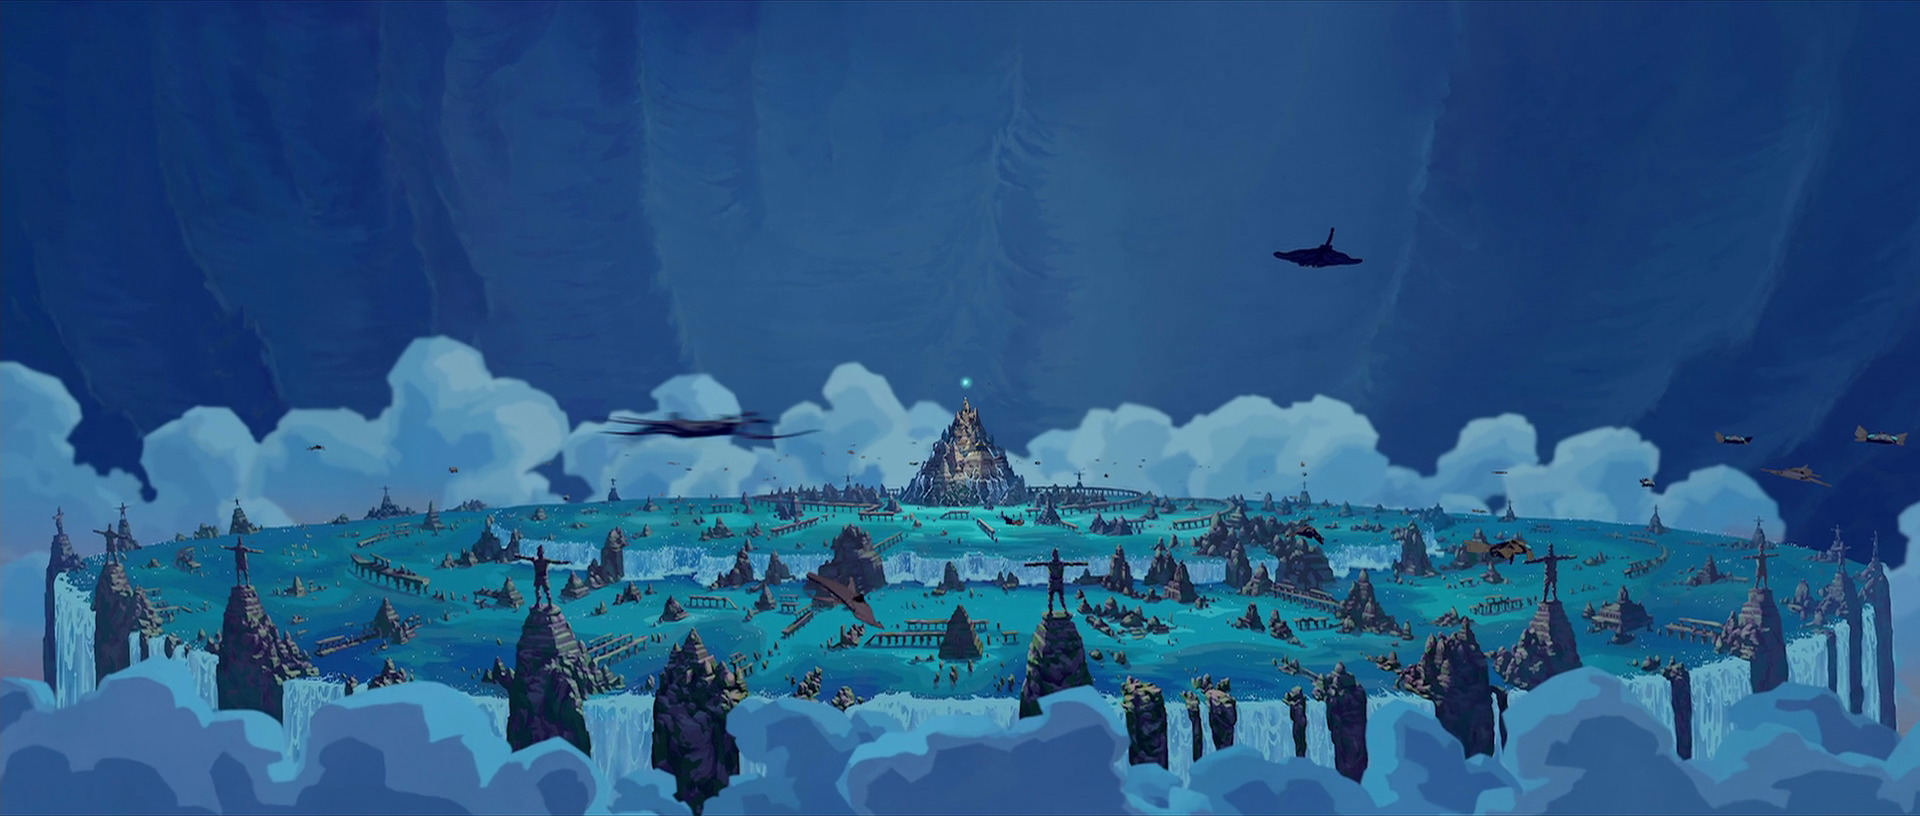 Worst Day Quotes Wallpaper Atlantis The Lost Empire The Best Hand Animated Disney